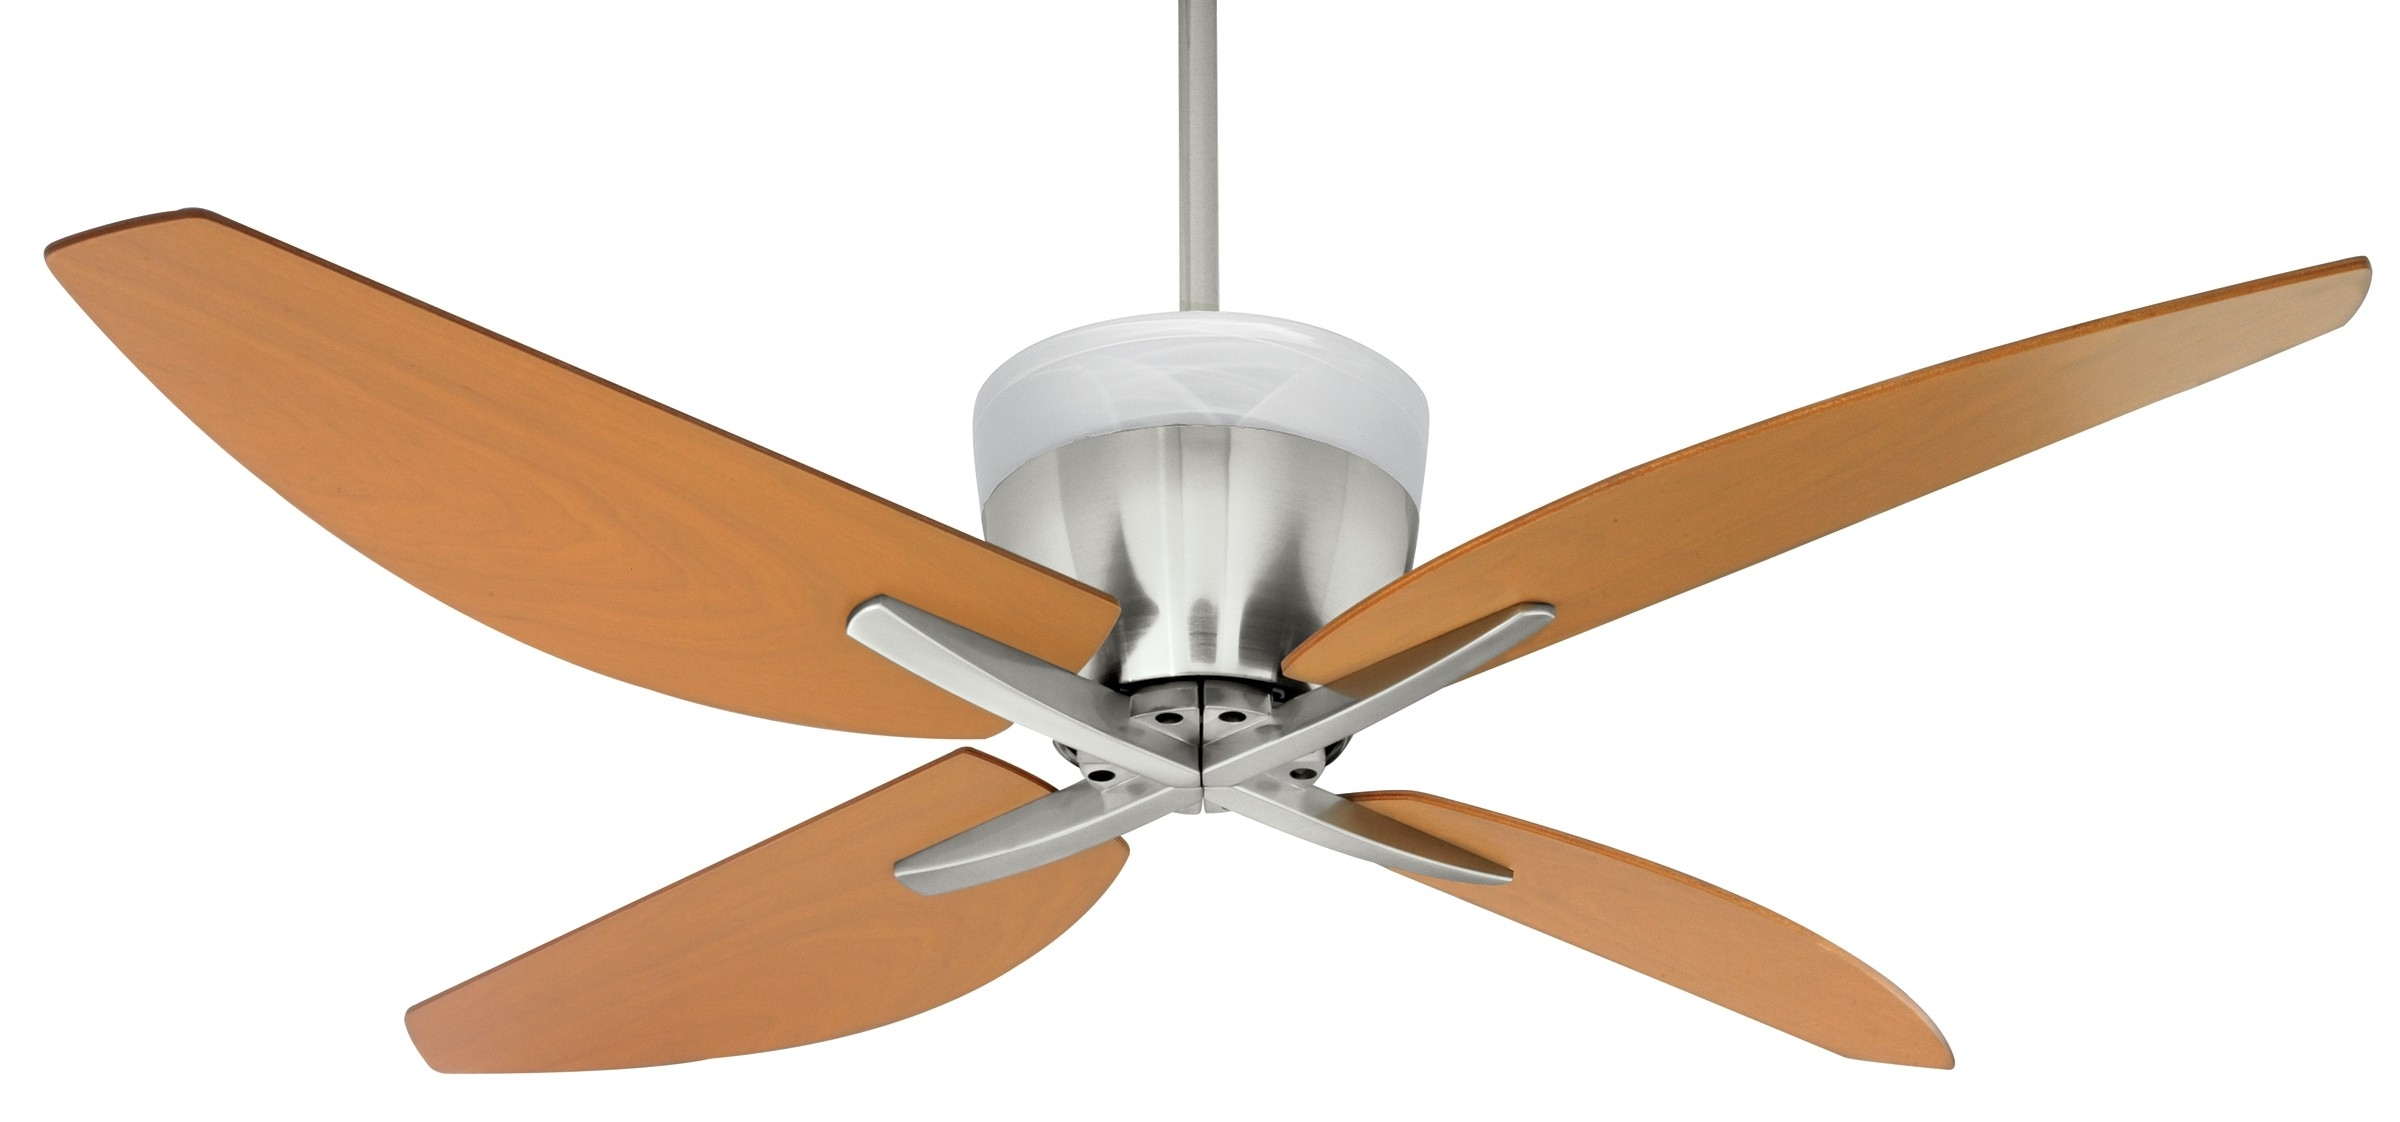 Outdoor Ceiling Fans With Uplights With Regard To Well Known Ceiling: Amusing Ceiling Fans With Uplights Hunter Uplight Ceiling (View 17 of 20)